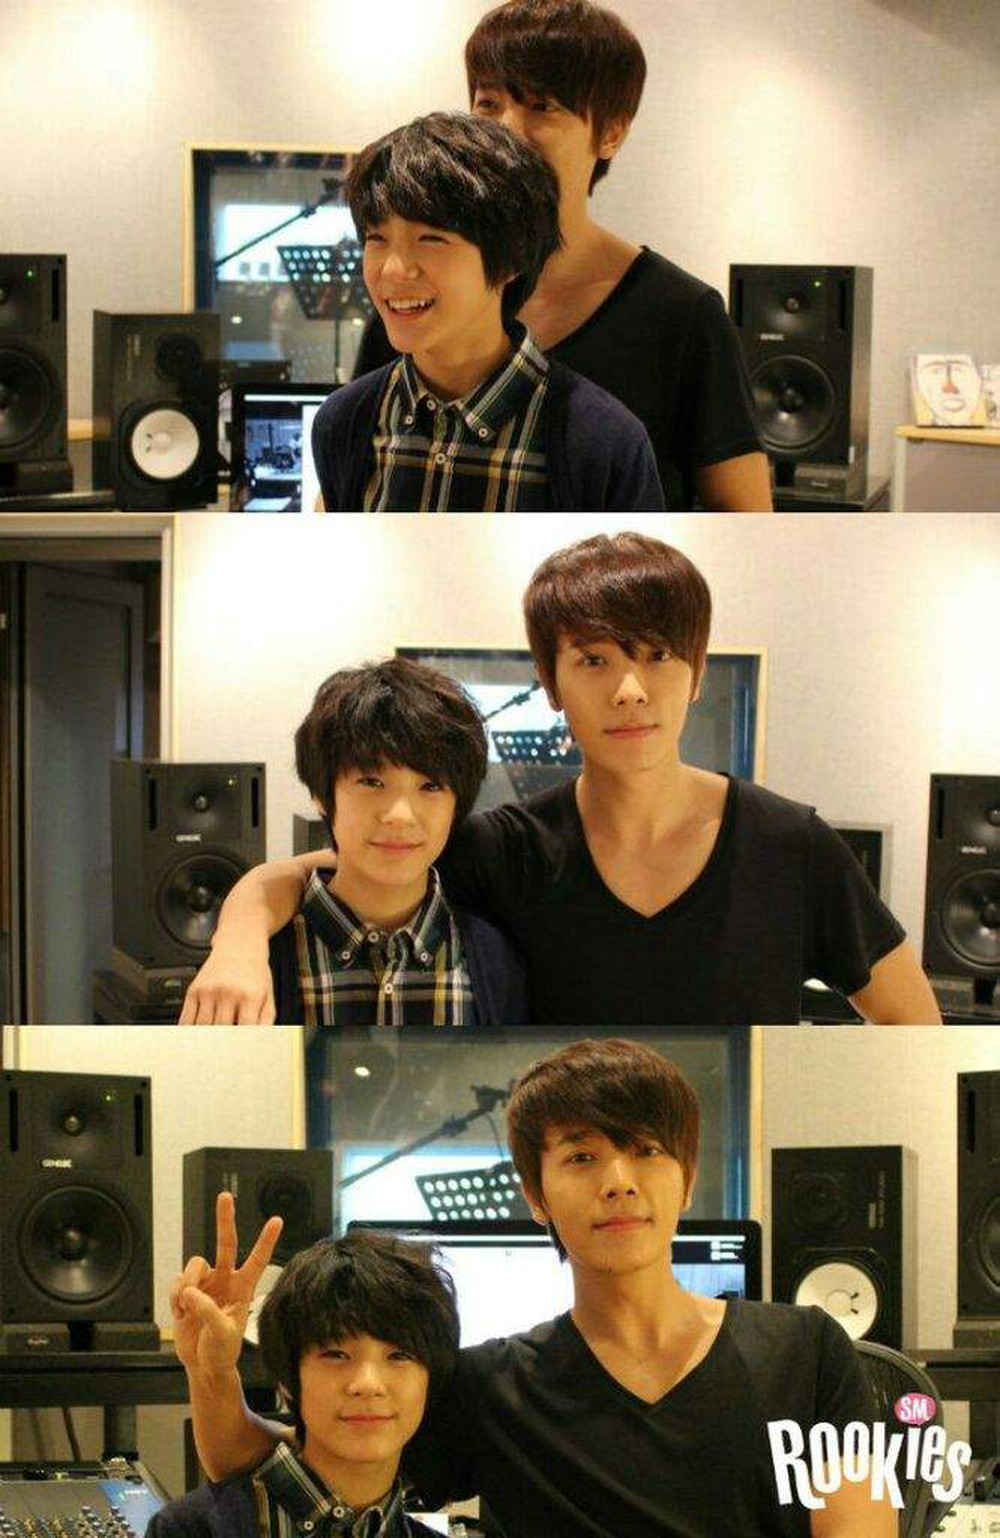 jeno and donghae